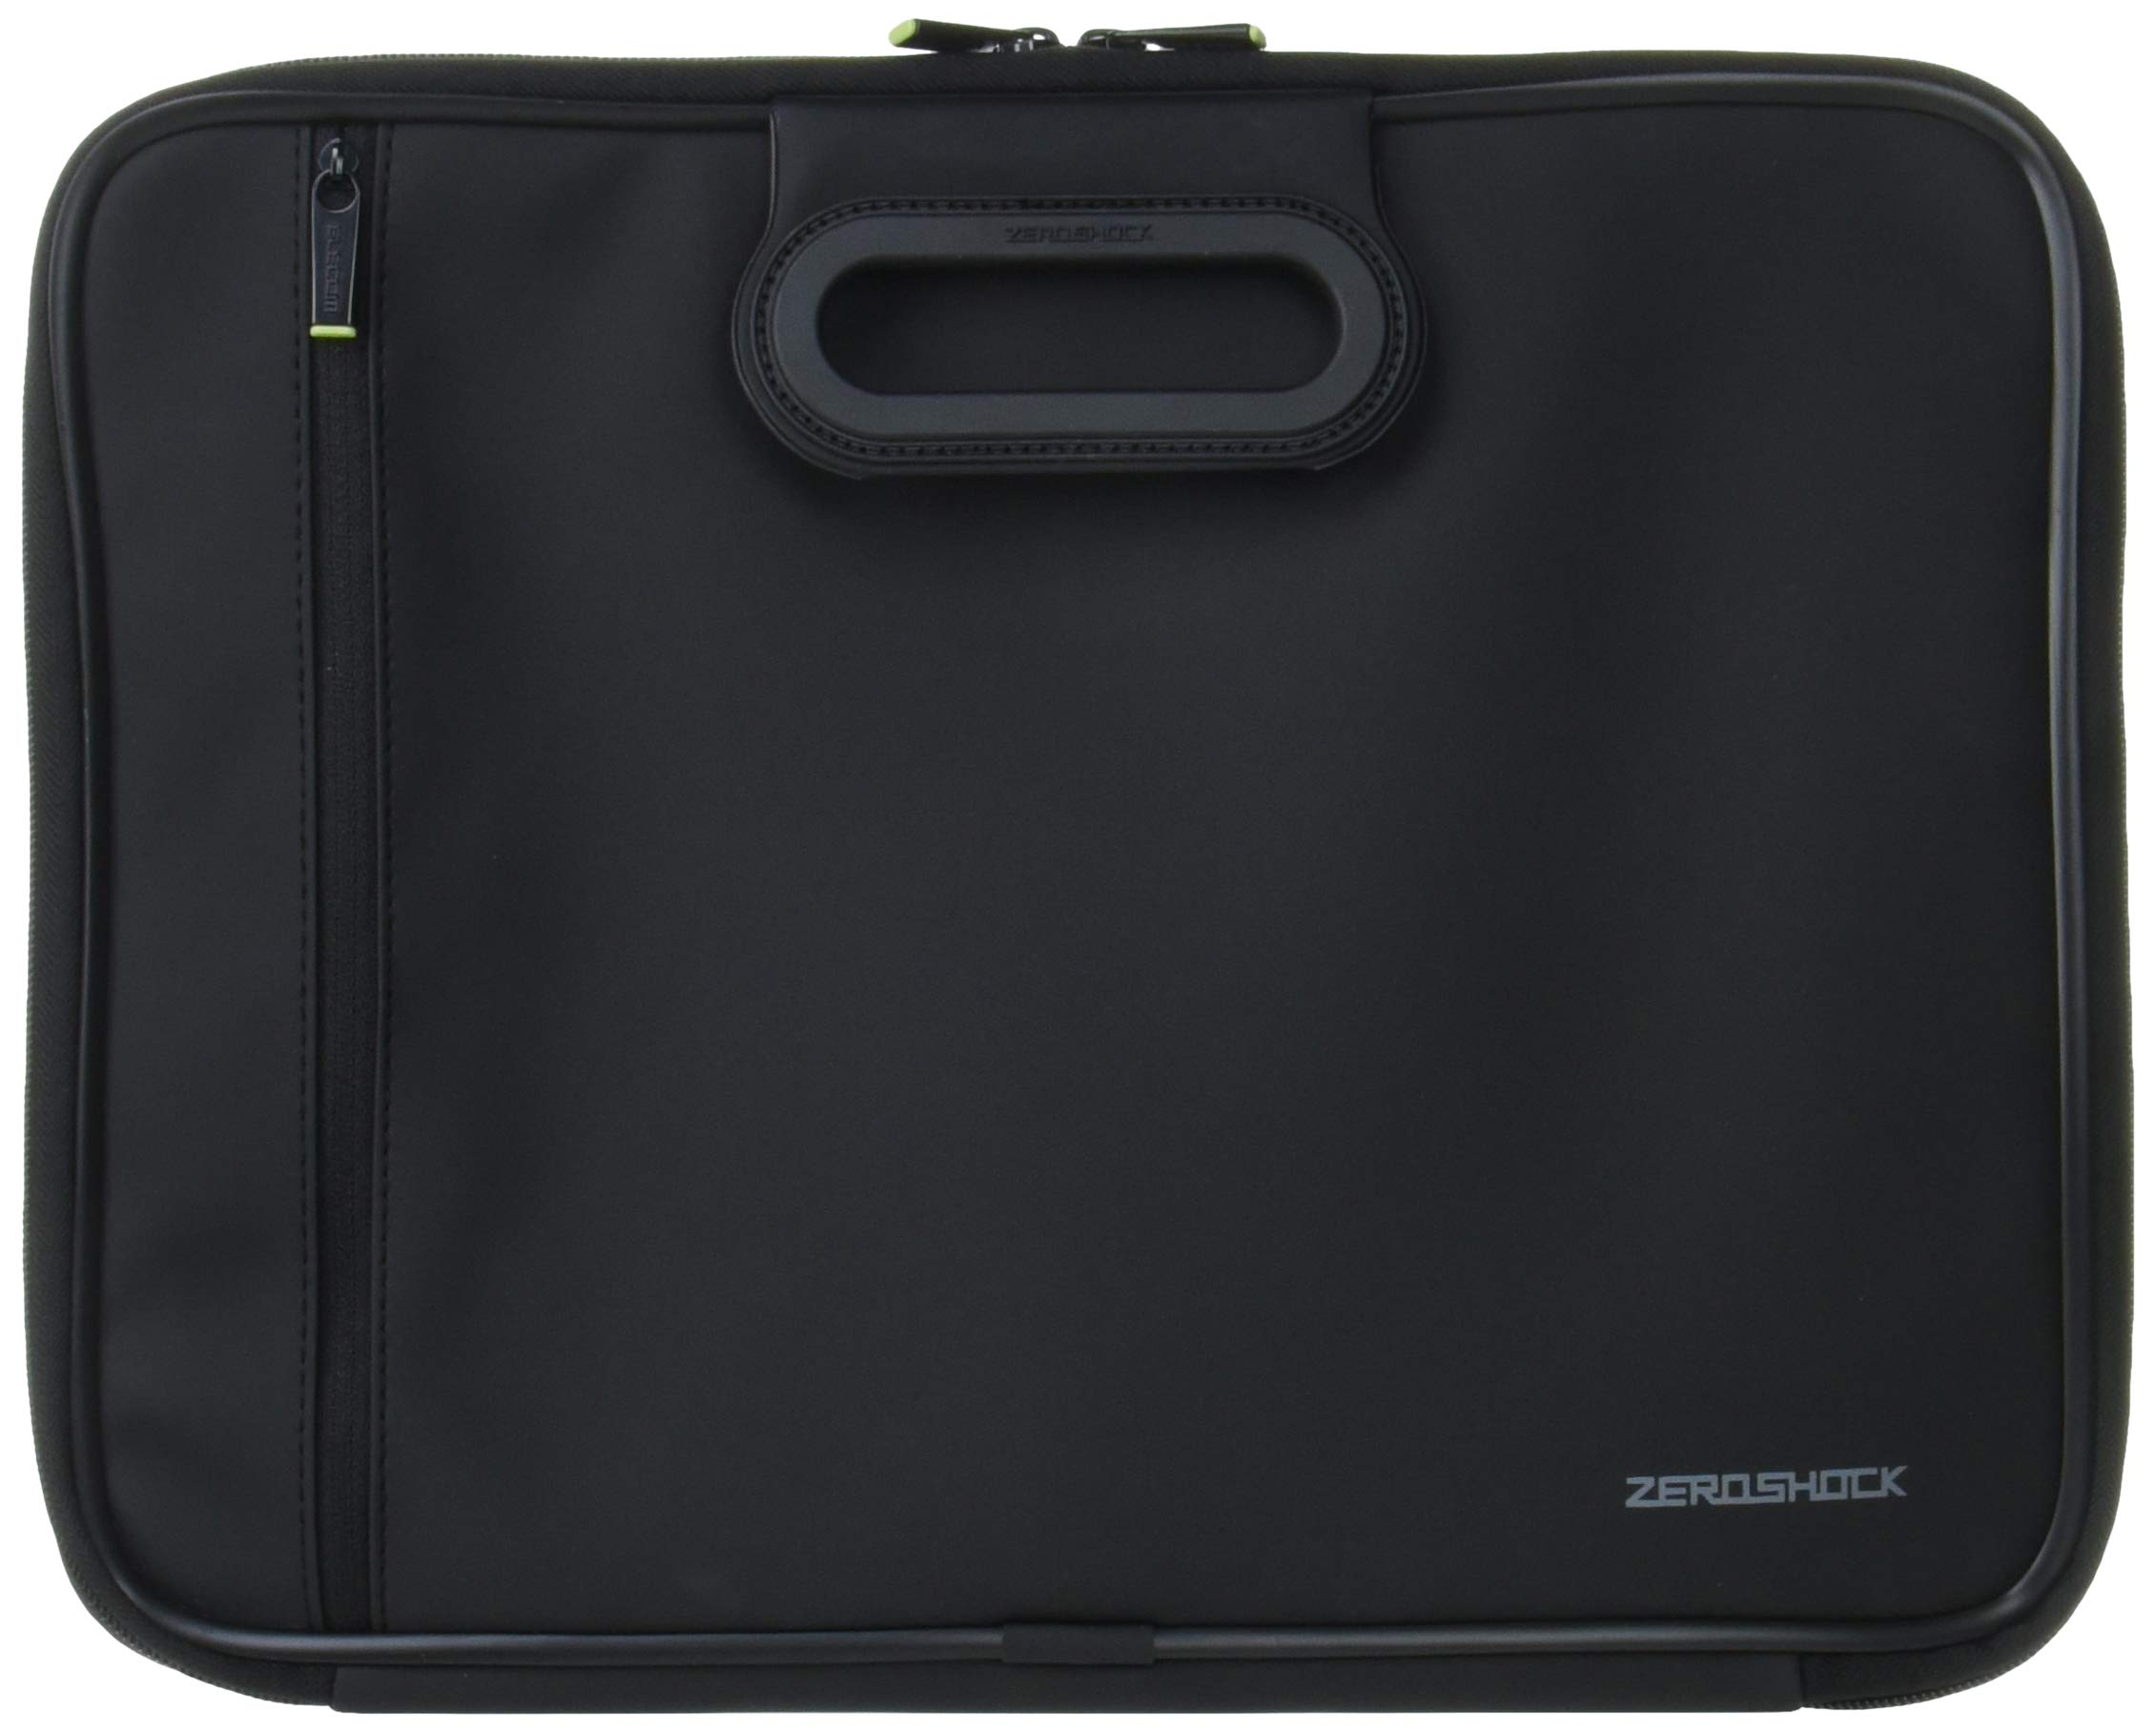 ELECOM Zero Shock Protective Sleeve, Water-Resistance up to 13.3 inch Laptop with The Carry Handle/Black/ZSB-IBNH13BK